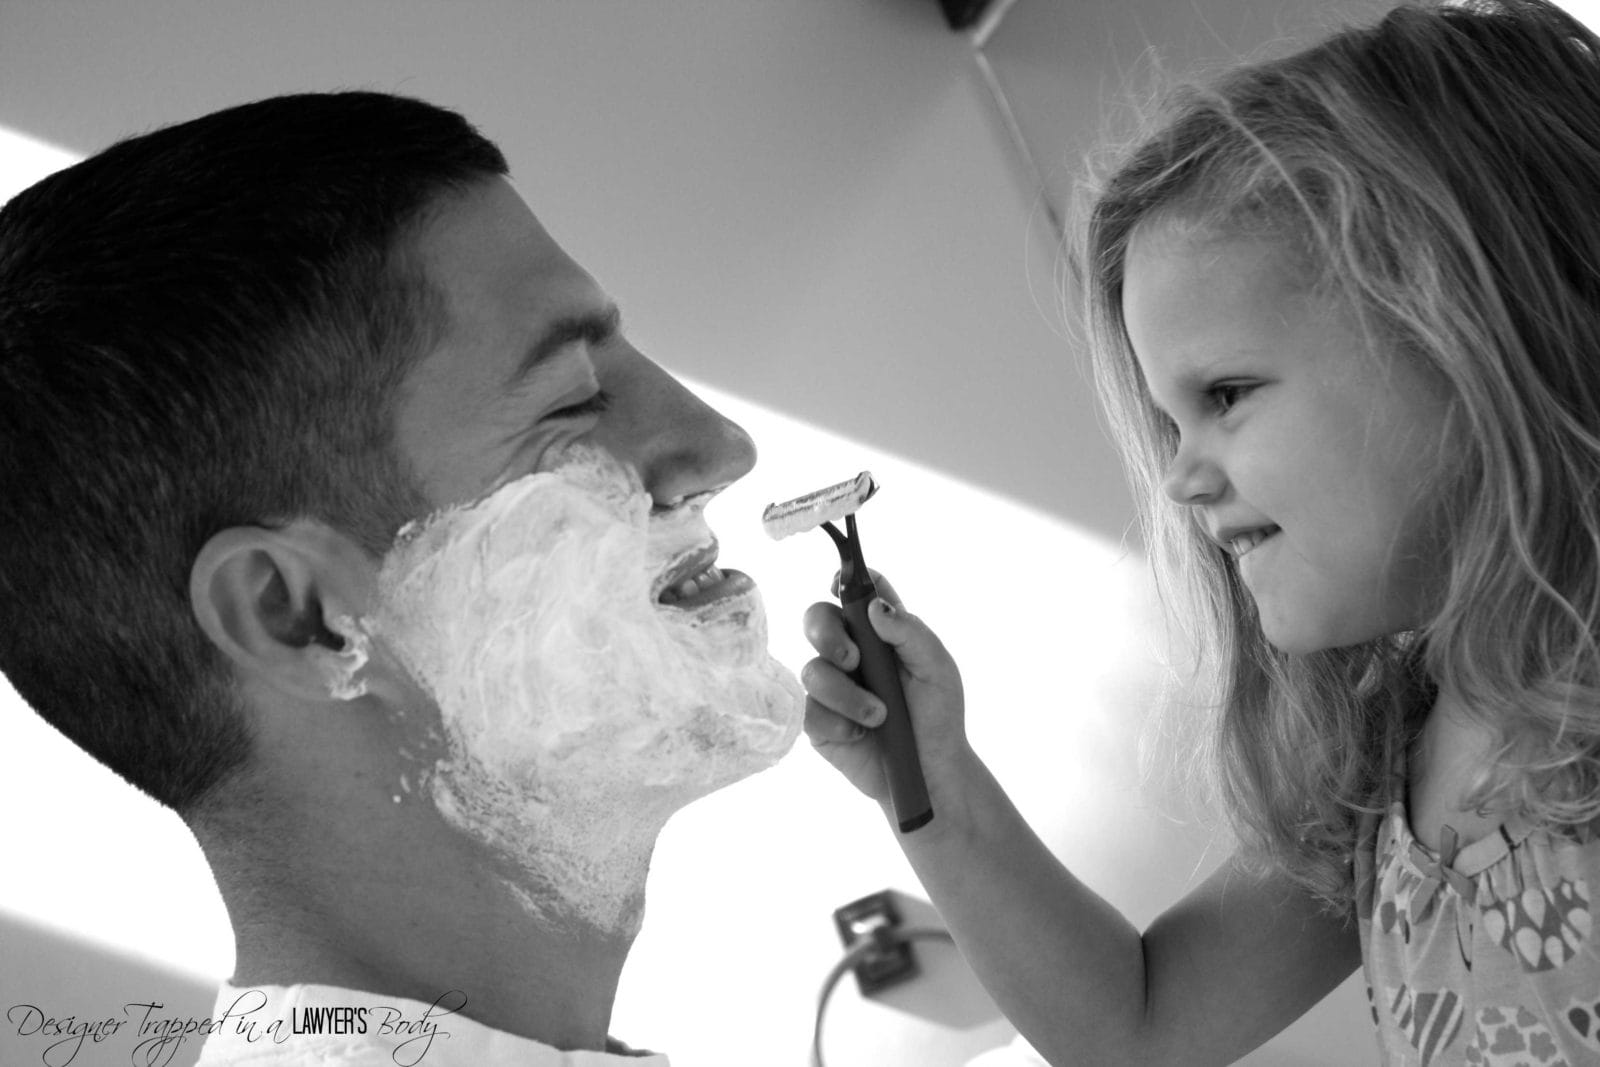 MUST PIN! Daddy Daughter Shaving Photos for Father's Day! By Designer Trapped in a Lawyer's Body for Tatertots & Jello. #fathersdayphotos